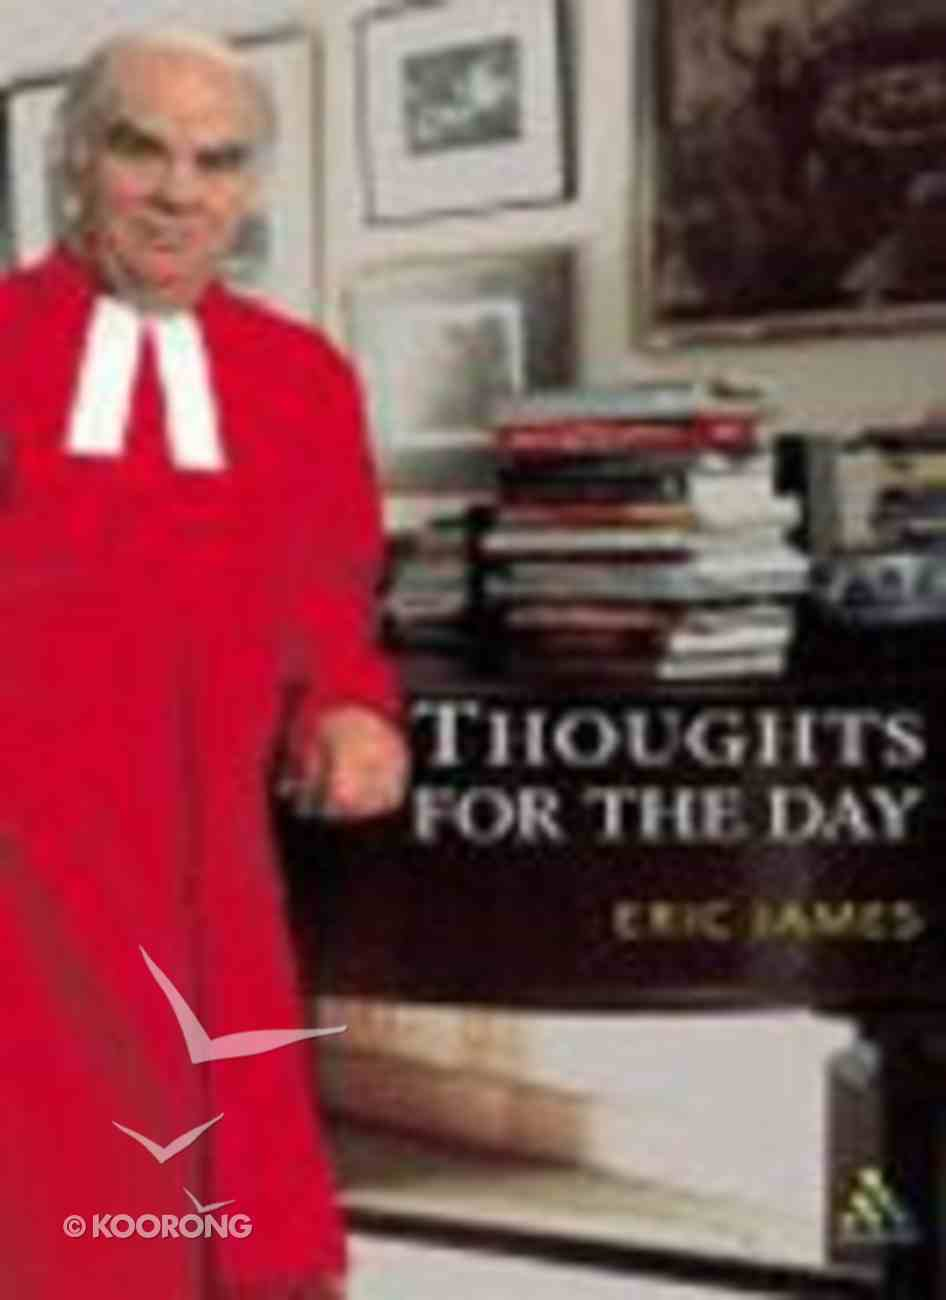 Thoughts For the Day Paperback